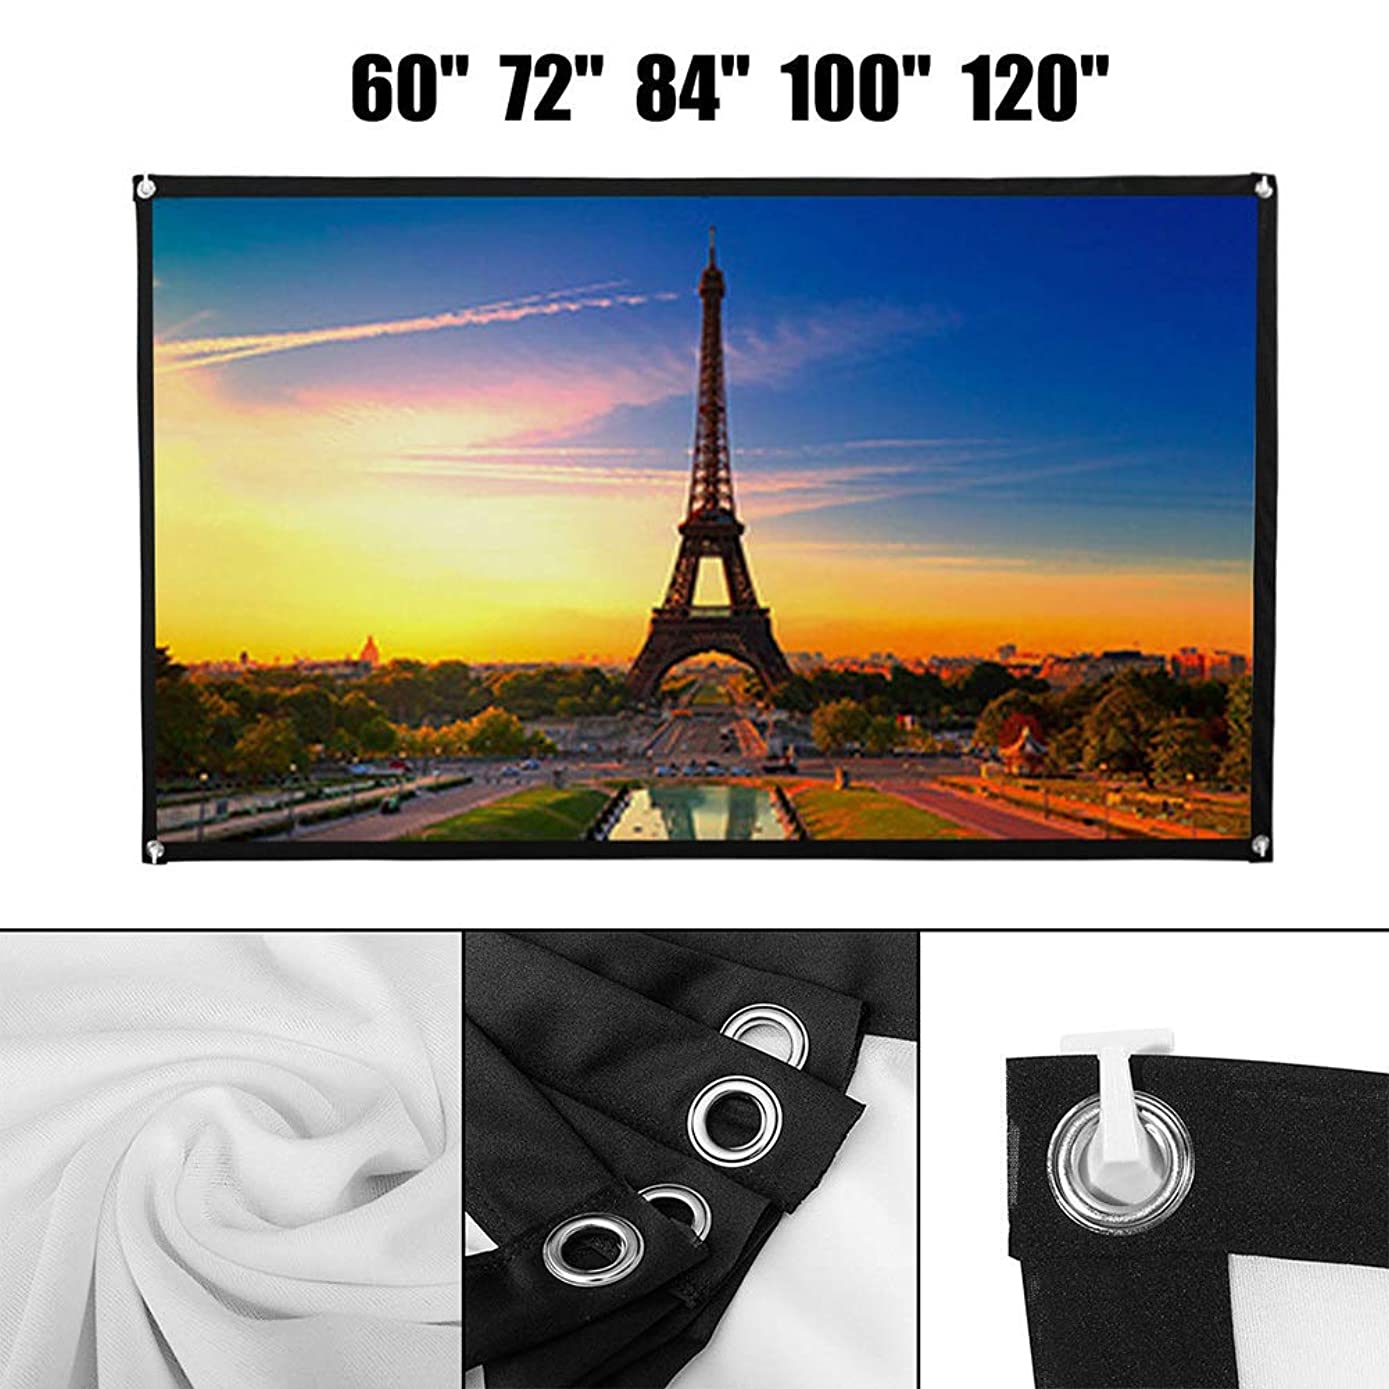 Yamalans 60/72/84/100/120 Inch Projector Screen Foldable Home Theater Outdoor Movies 84Inch